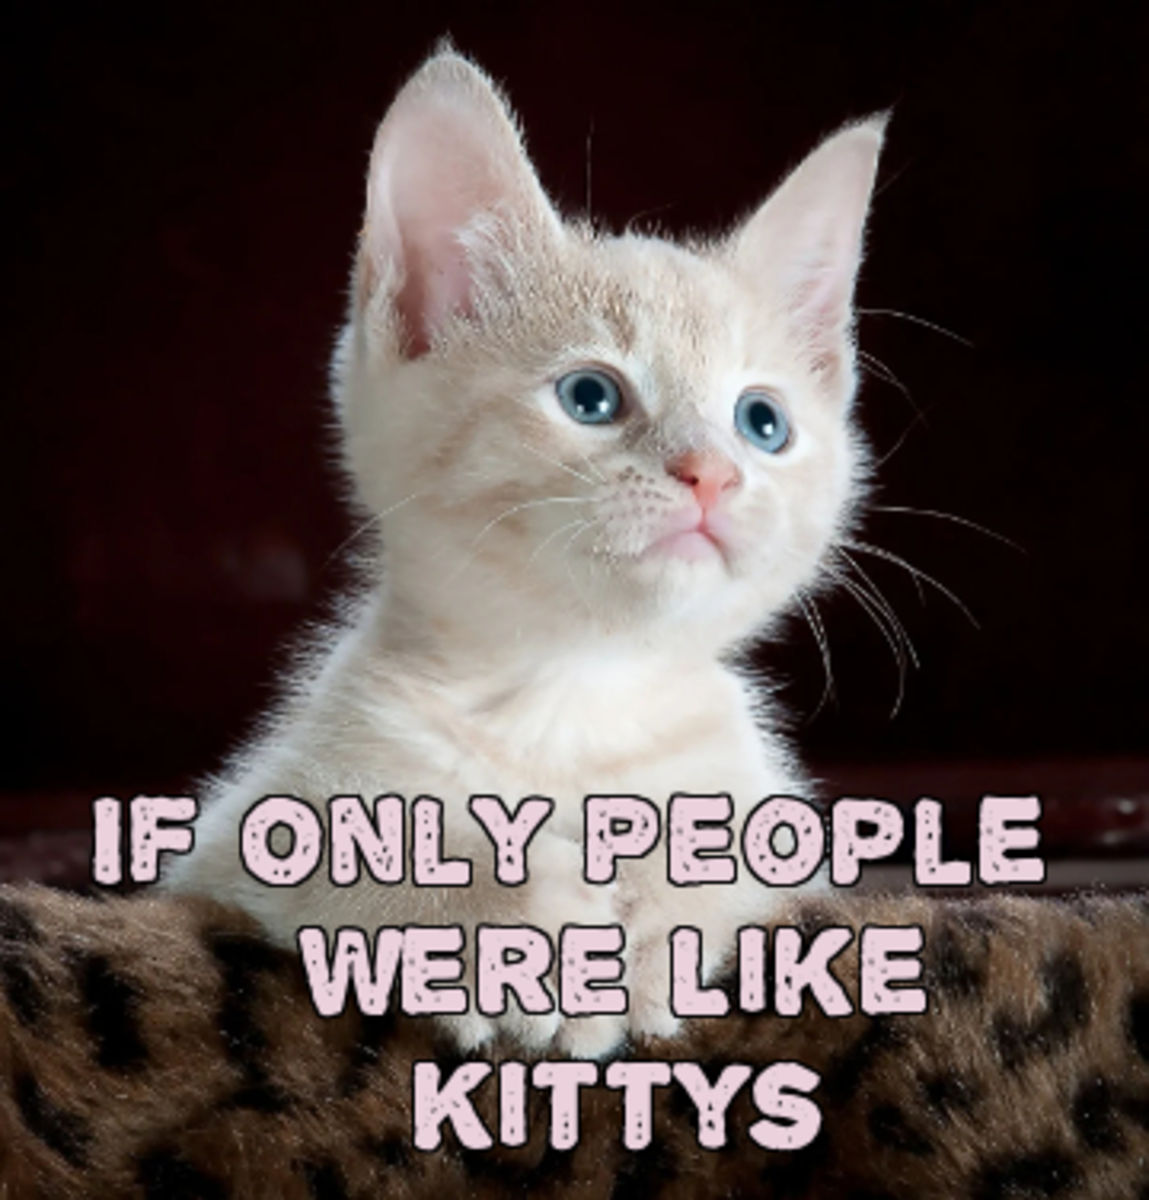 if-only-people-were-like-kittys